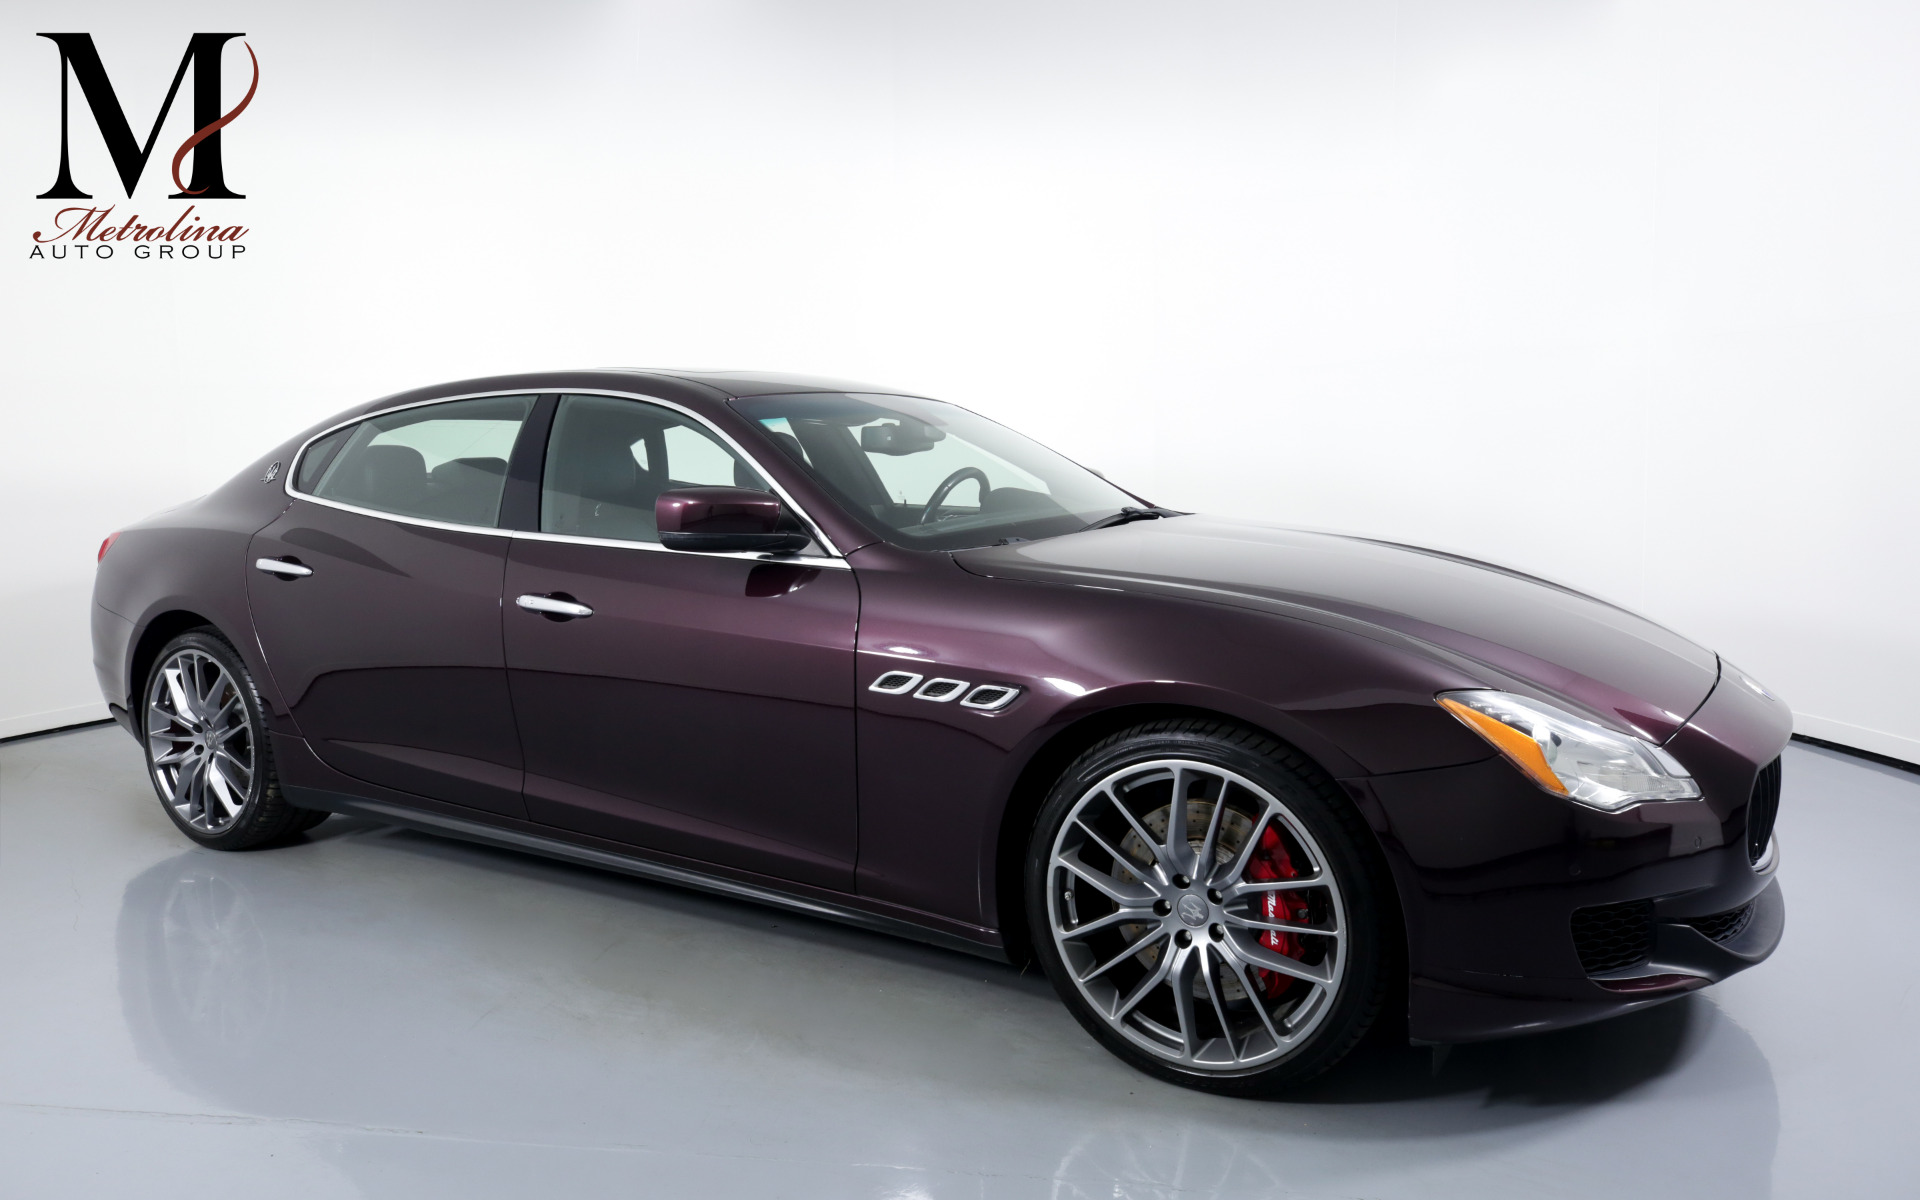 Used 2014 Maserati Quattroporte Sport GT S for sale $39,996 at Metrolina Auto Group in Charlotte NC 28217 - 1